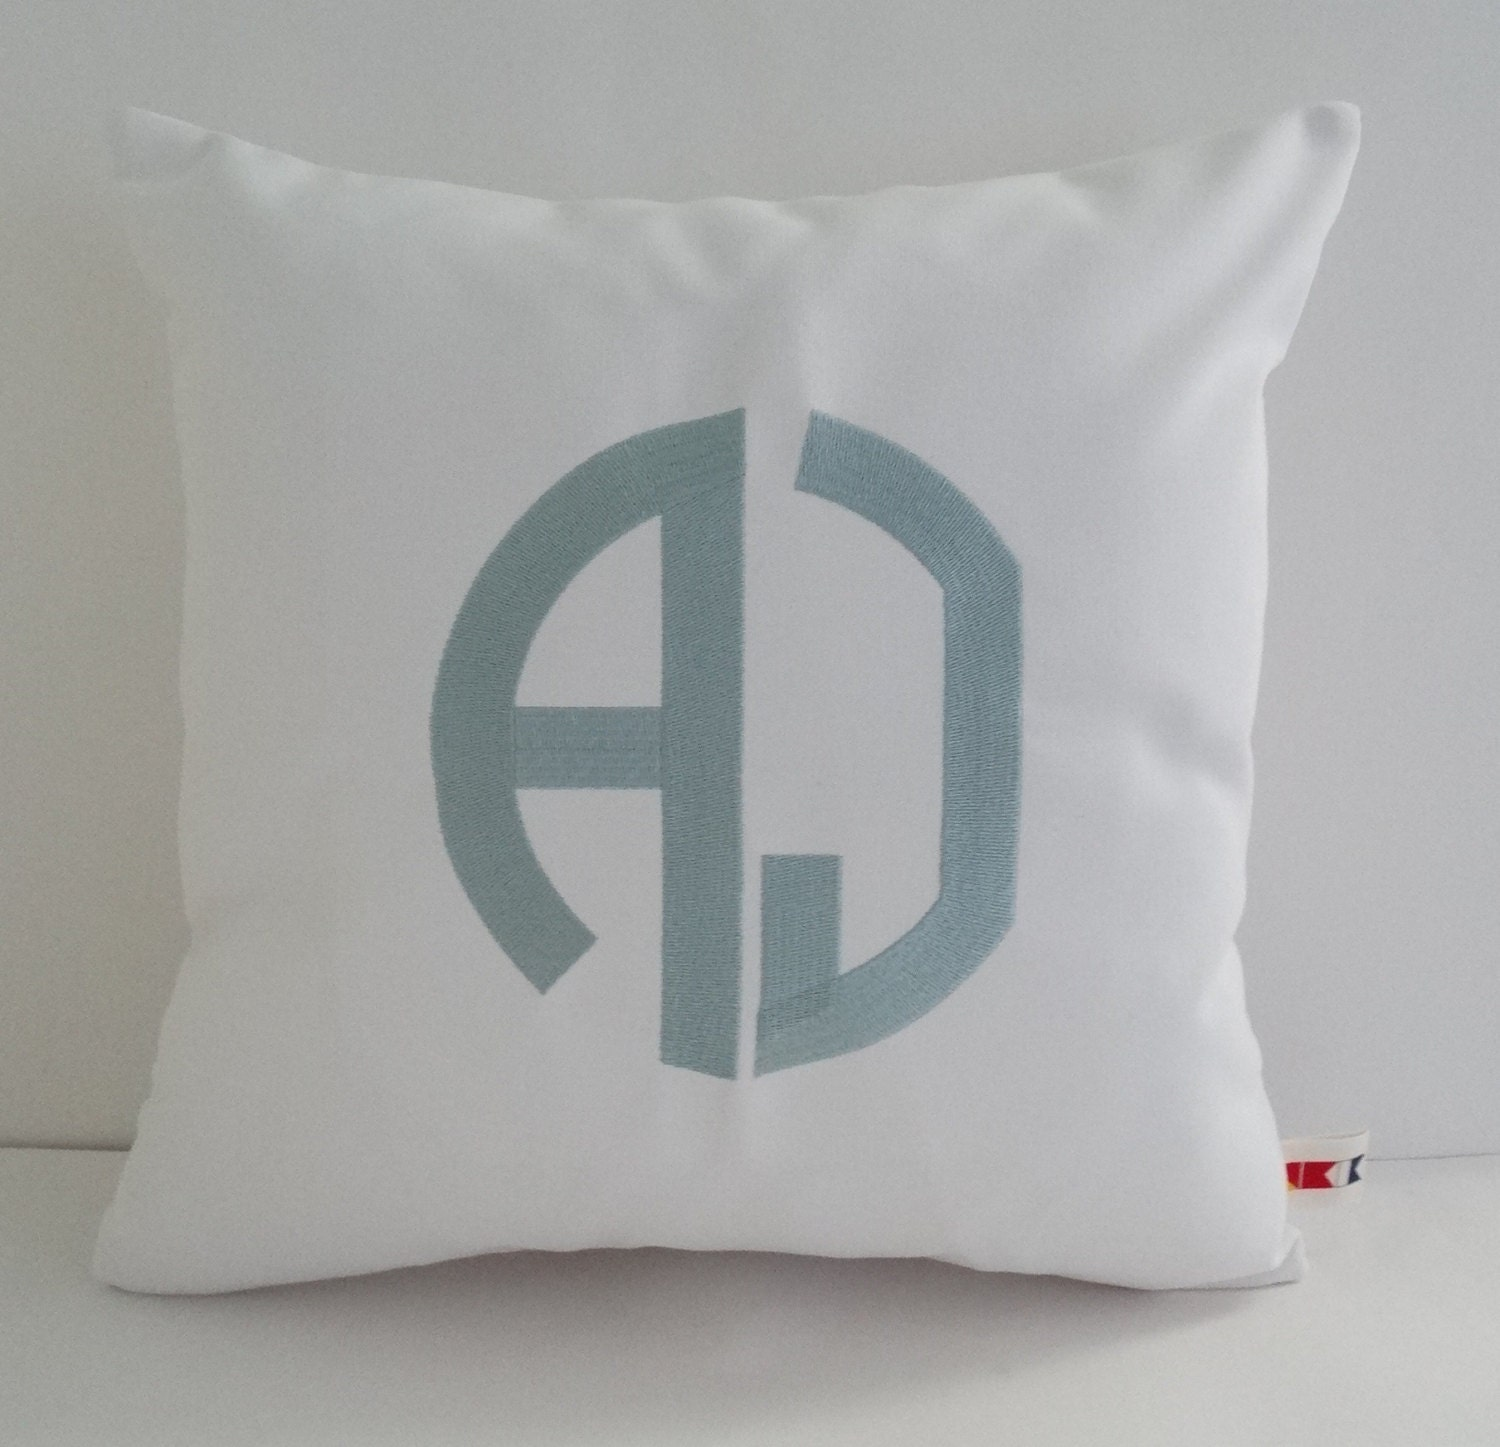 MONOGRAM PILLOW COVER Sunbrella indoor outdoor initial modern